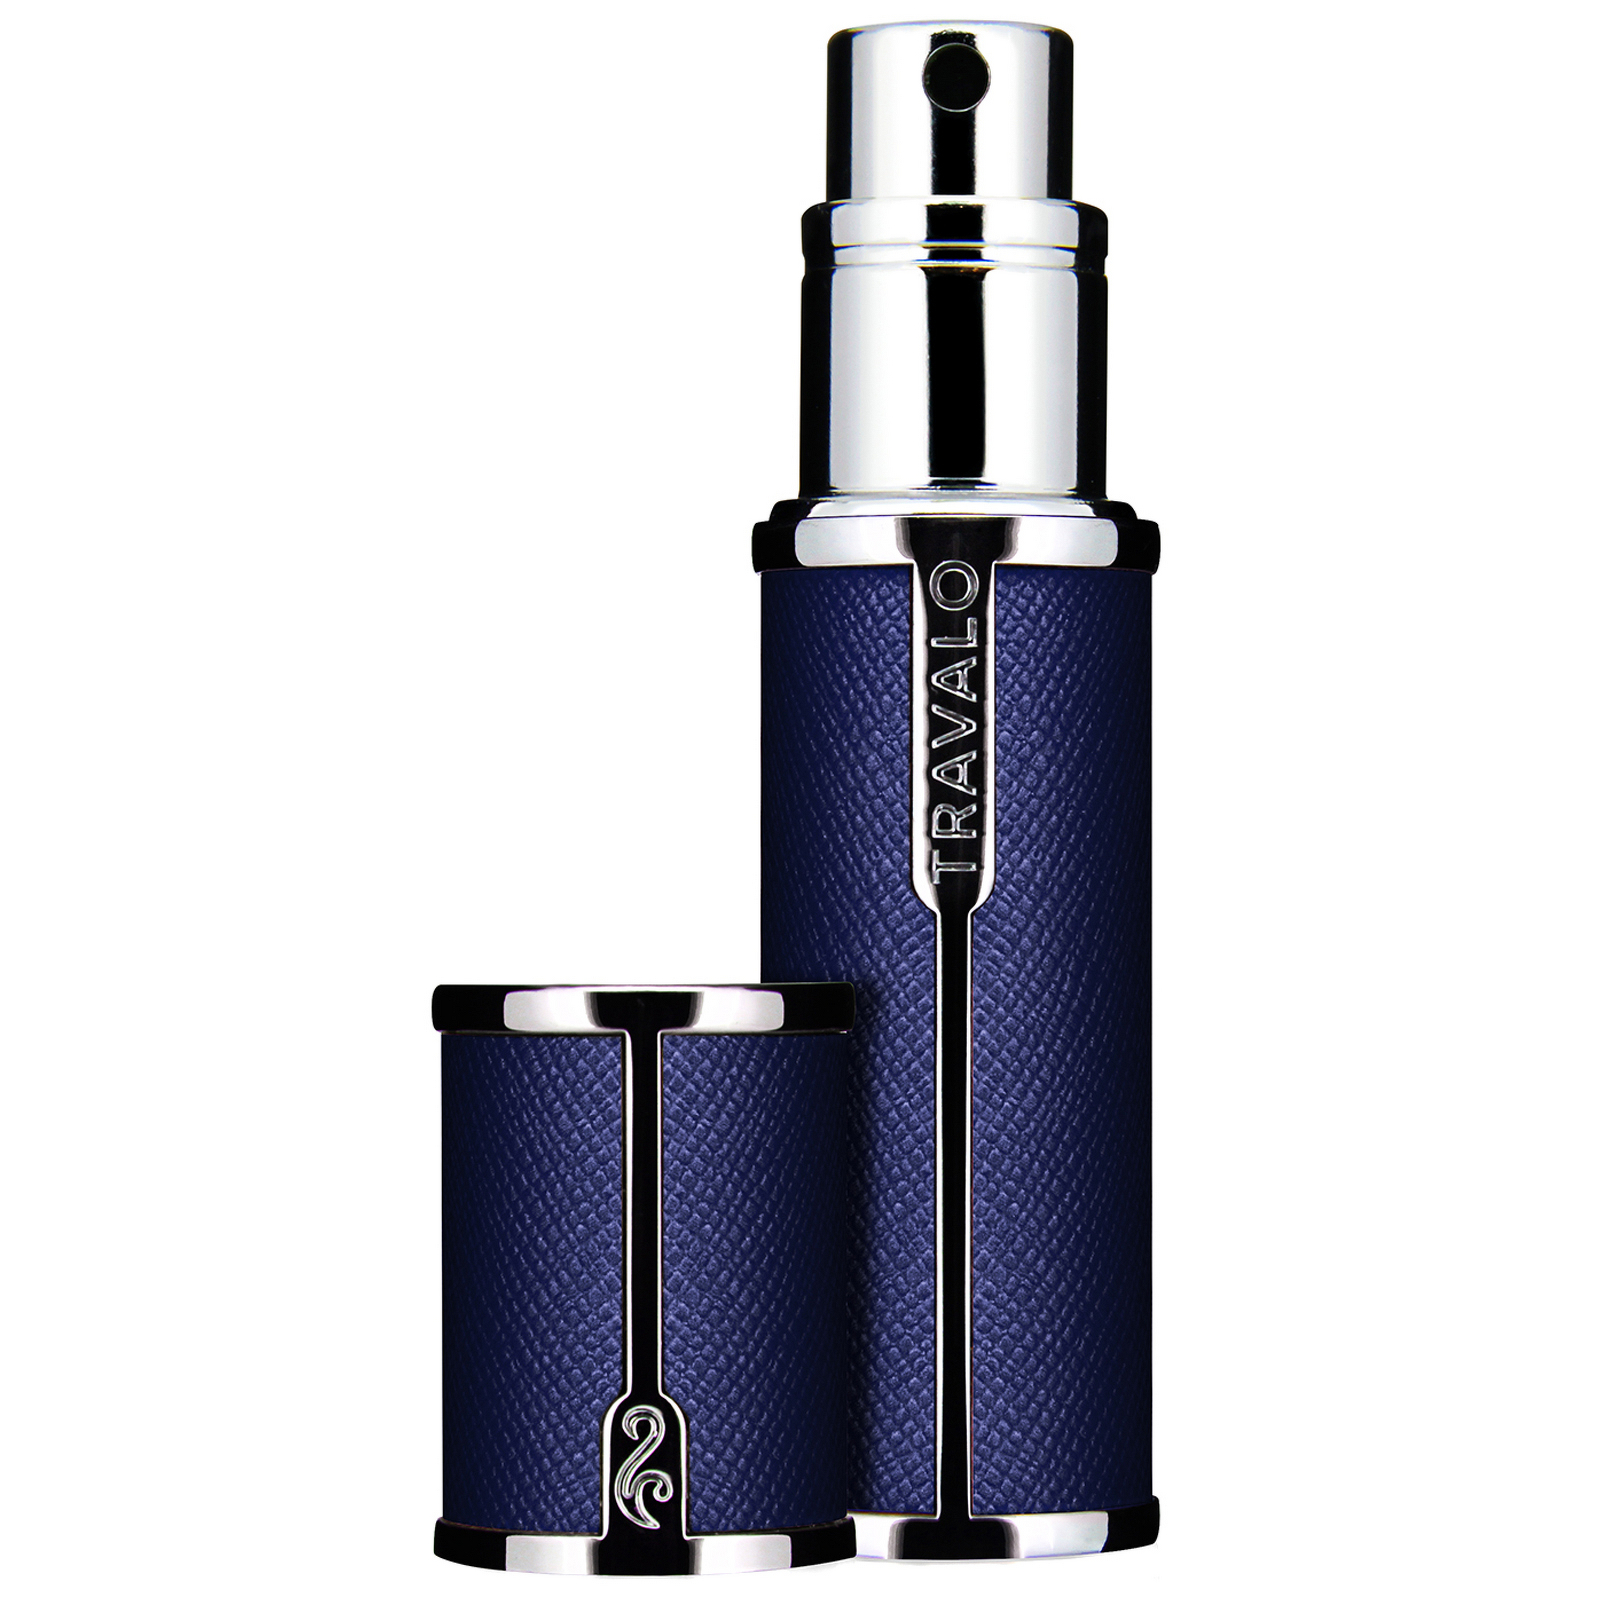 Travalo Perfume Atomiser Milano Blue 5ml / 0.17 fl.oz.